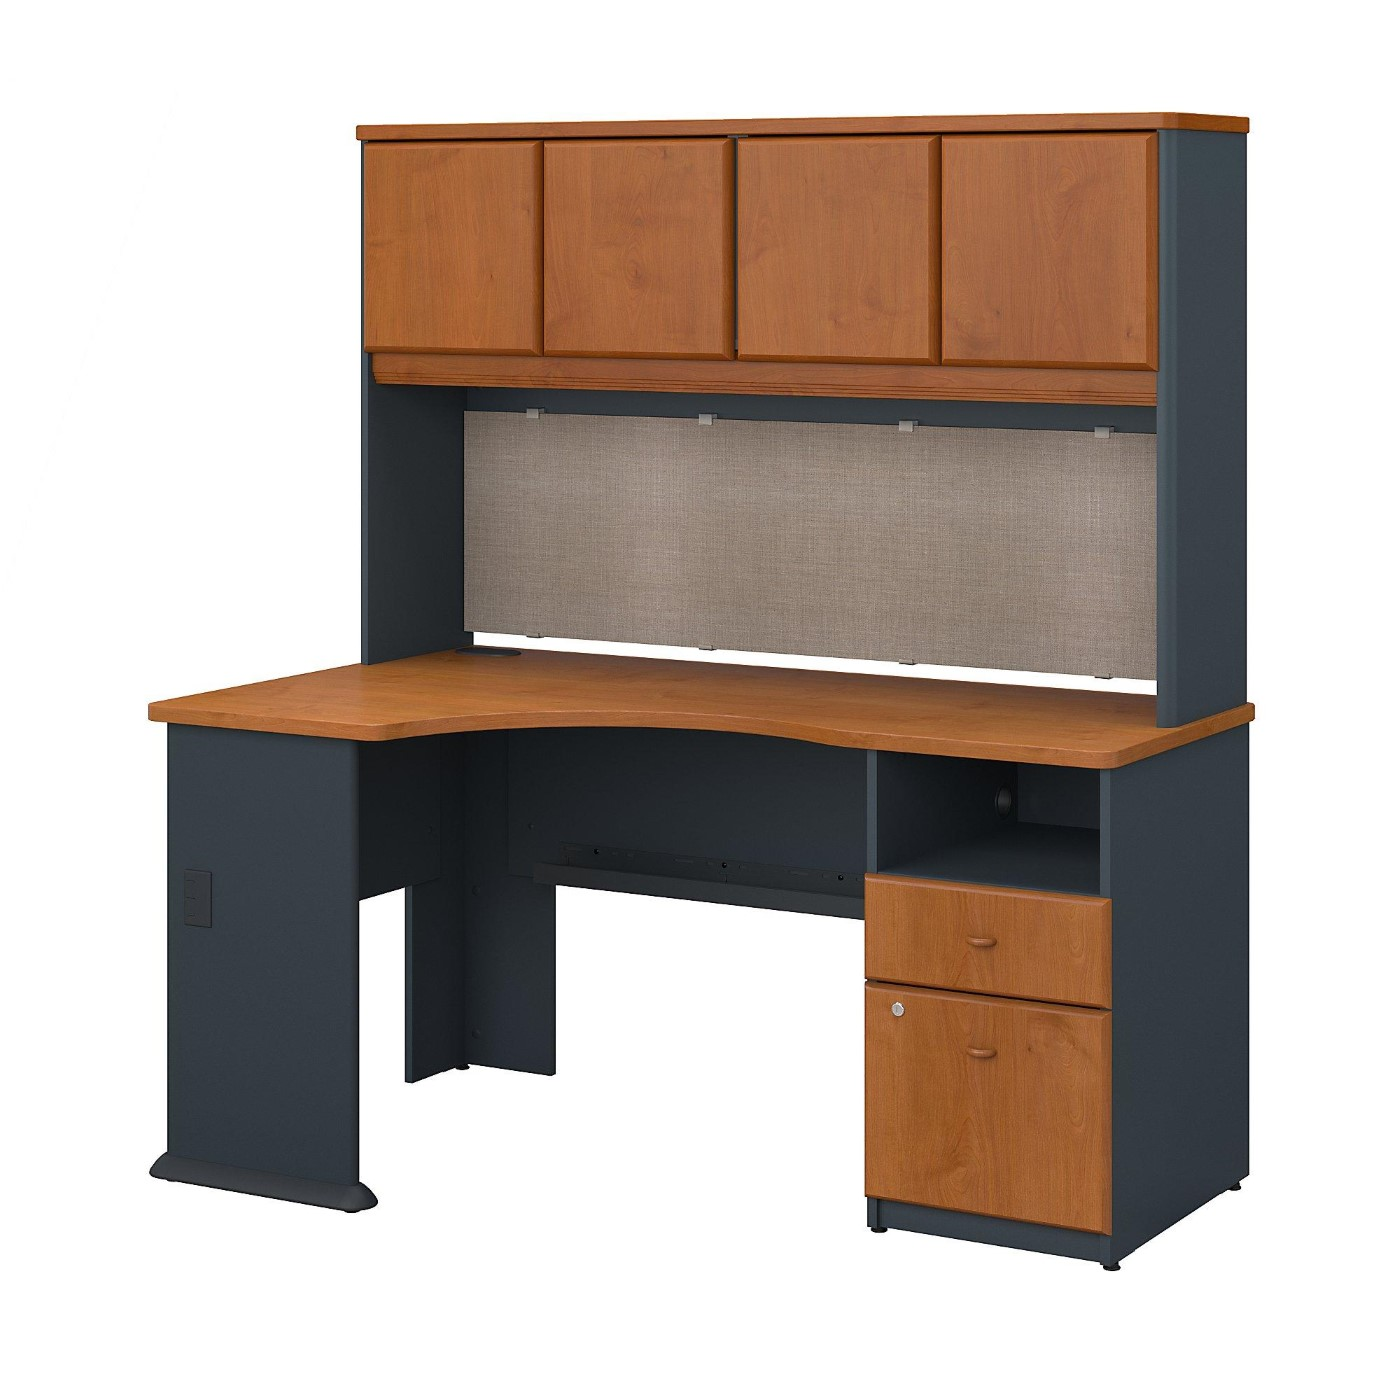 BUSH BUSINESS FURNITURE SERIES A 60W CORNER DESK WITH HUTCH AND 2 DRAWER PEDESTAL. FREE SHIPPING.